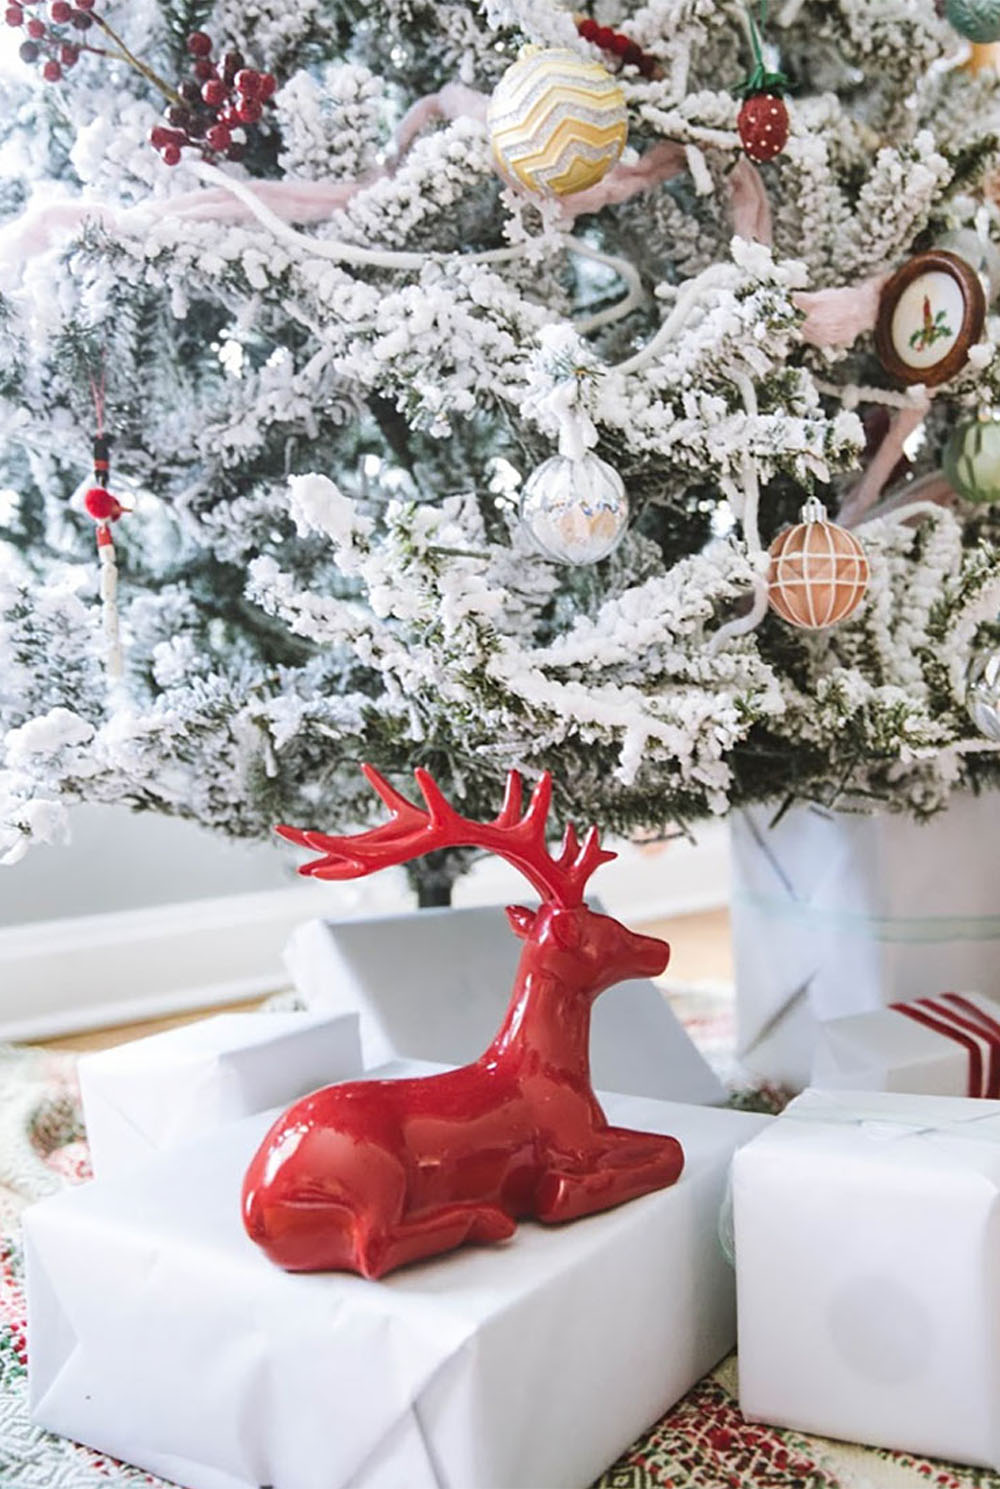 A red reindeer sitting on a wrapped gift under a Christmas Tree.